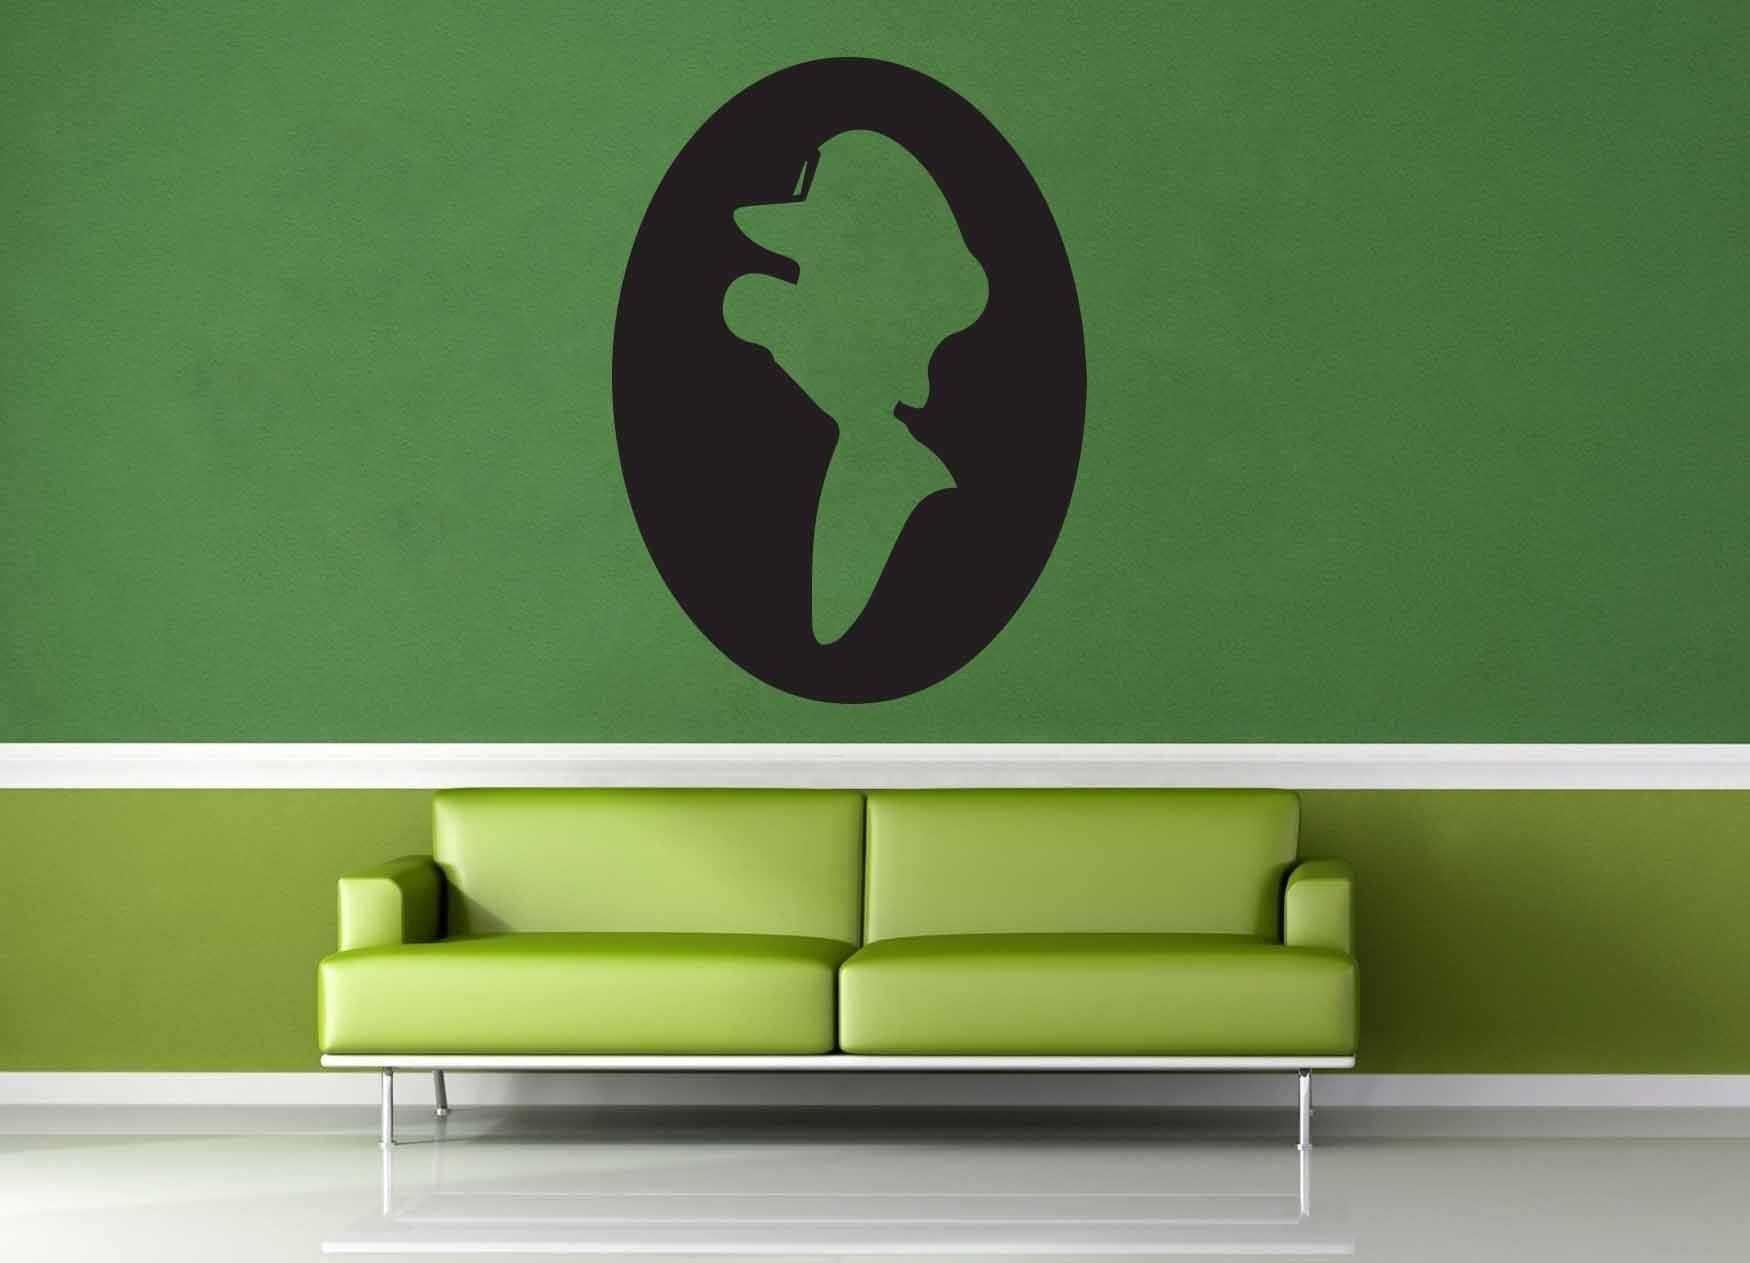 Luigi Cameo - Gamer Decor - Wall Decal